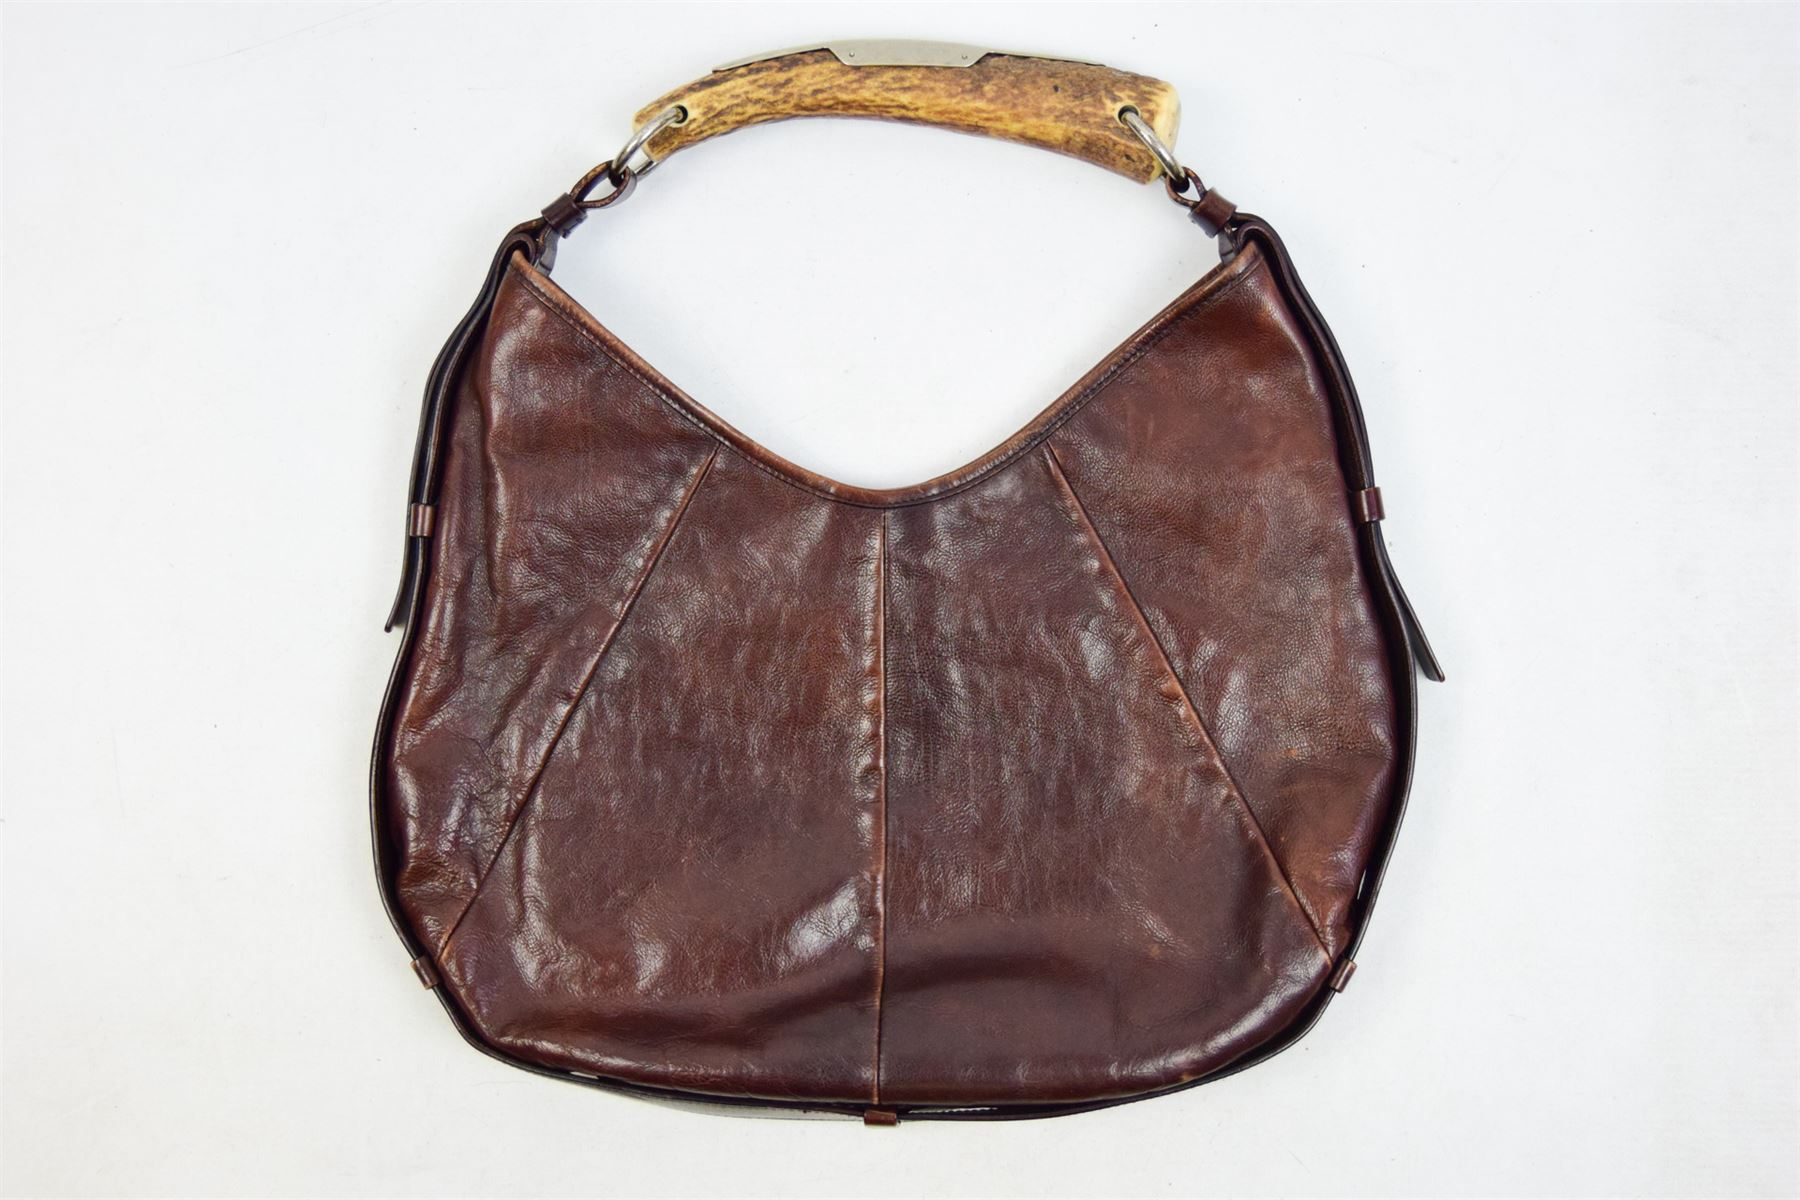 mombasa brown bag 6yves saint laurent reputable site 5dcf2 7aebe ... dfb18a26507c3